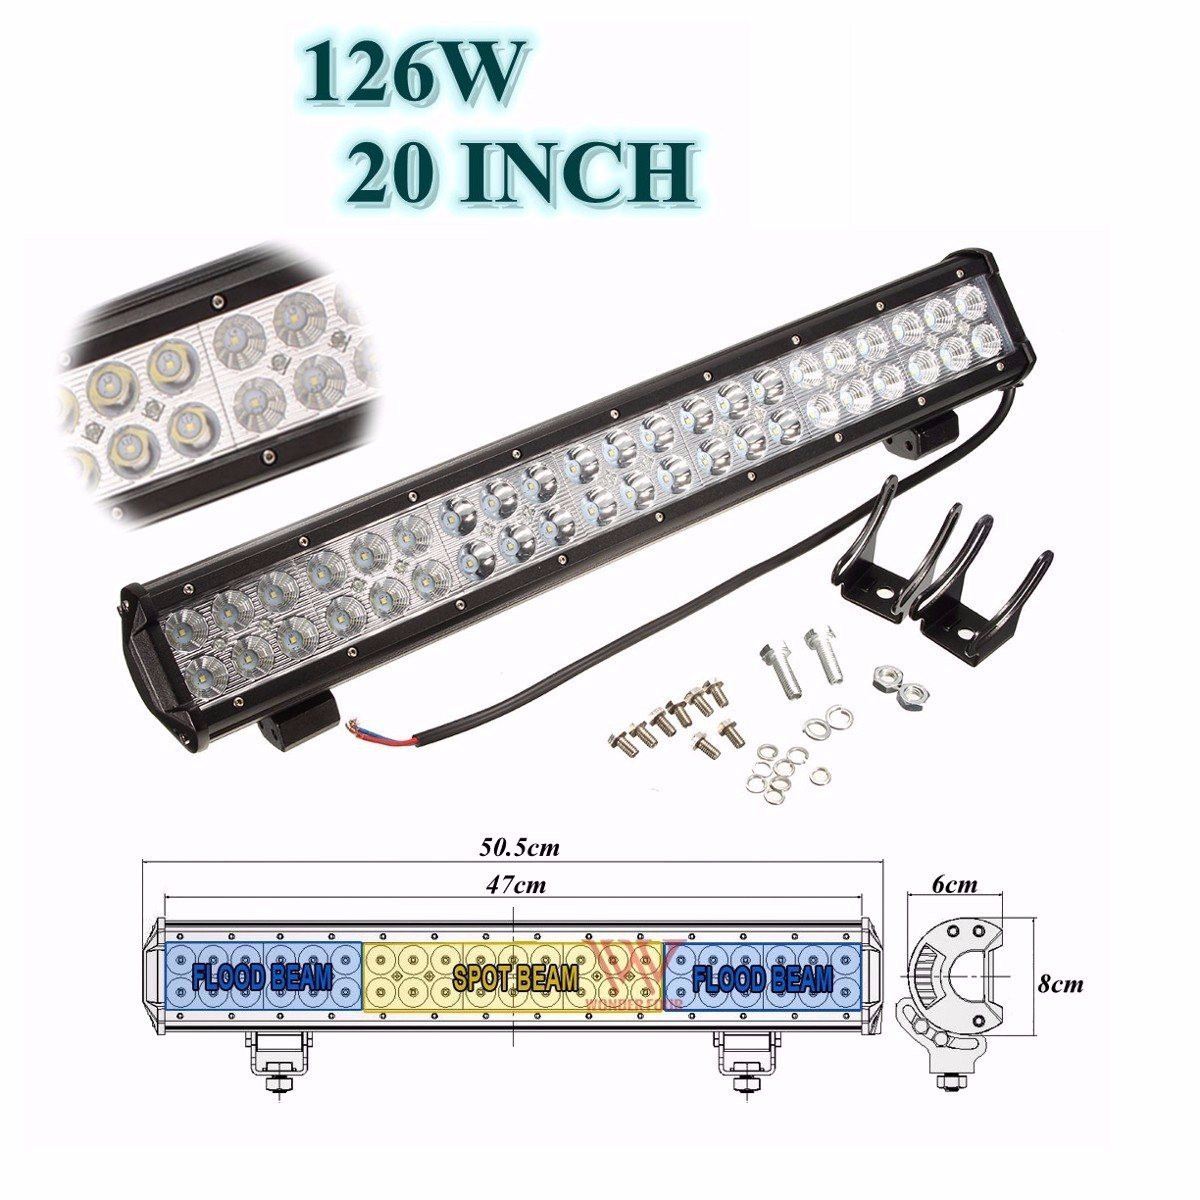 20 Inch 126W LED Spot Flood Combo Driving Work Light Bar ATV SUV 4WD Boat 12/24V Front Bumper License Mount Bracket Holder eyourlife 23 25 inch 120w fog lamp spot wide flood beam combo work driving led light bar for offroad suv atv 12v 24v 99